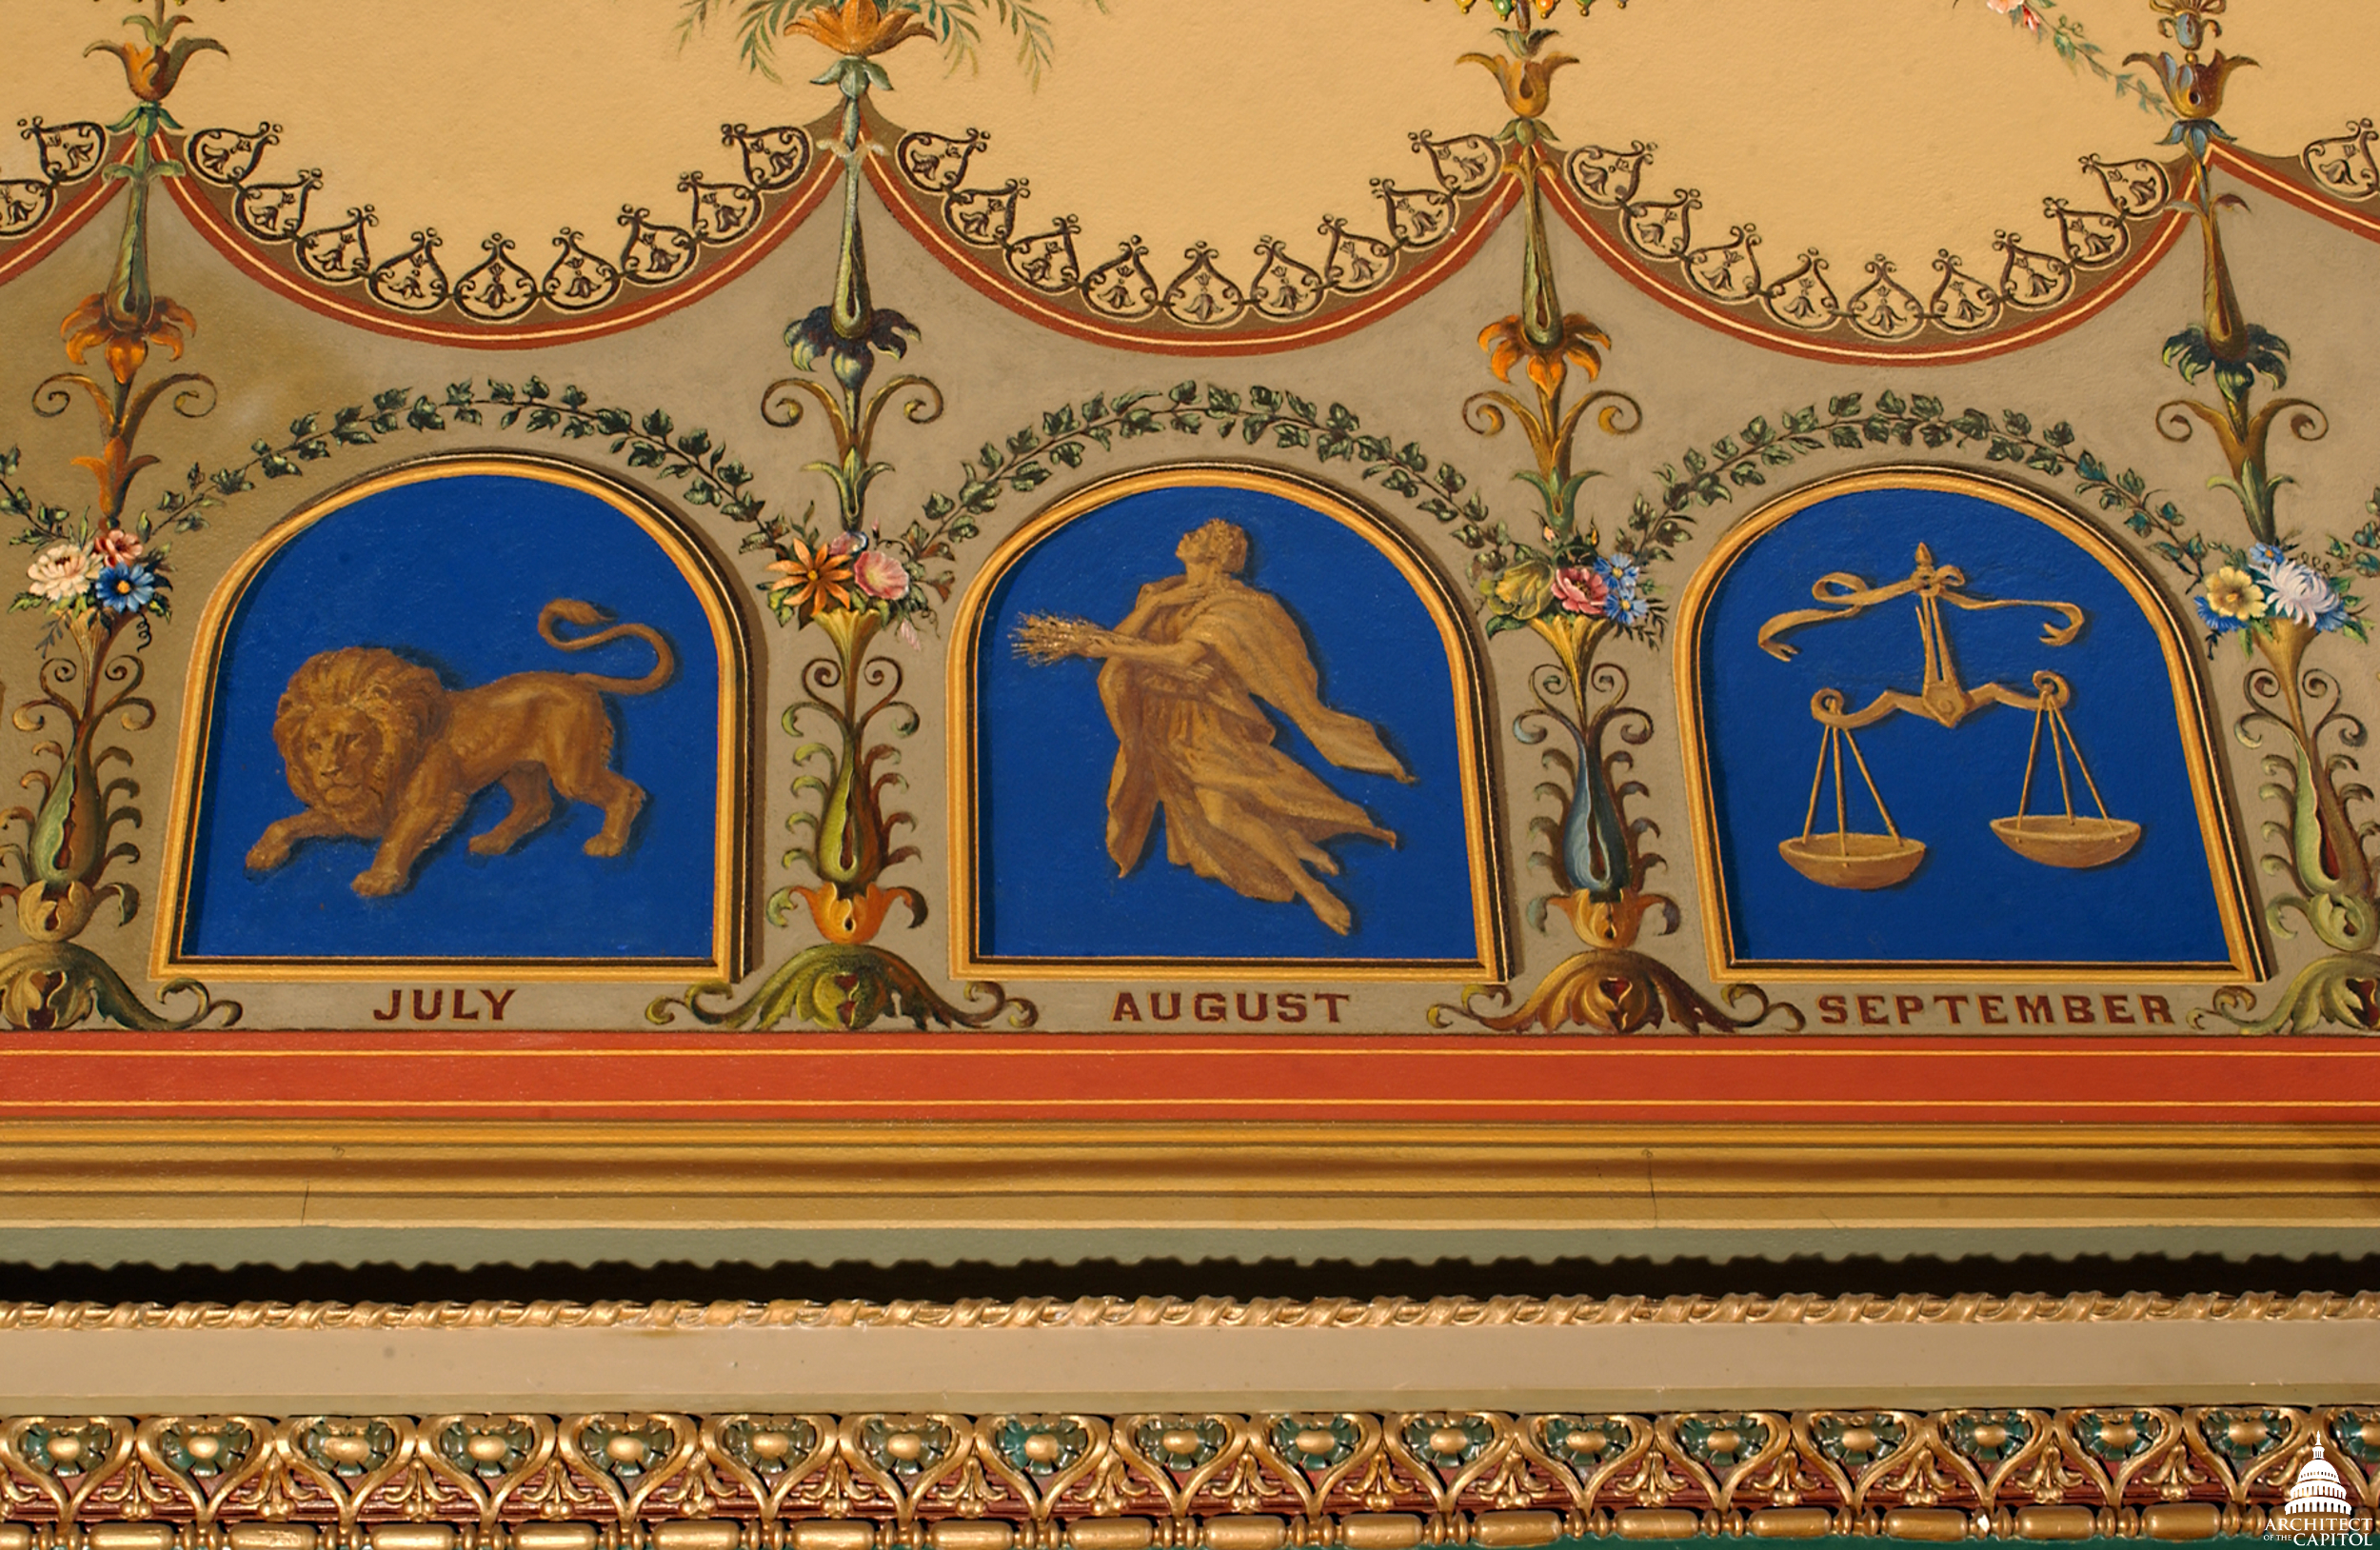 July, August and September represented in Brumidi's Zodiac Corridor of the U.S. Capitol.